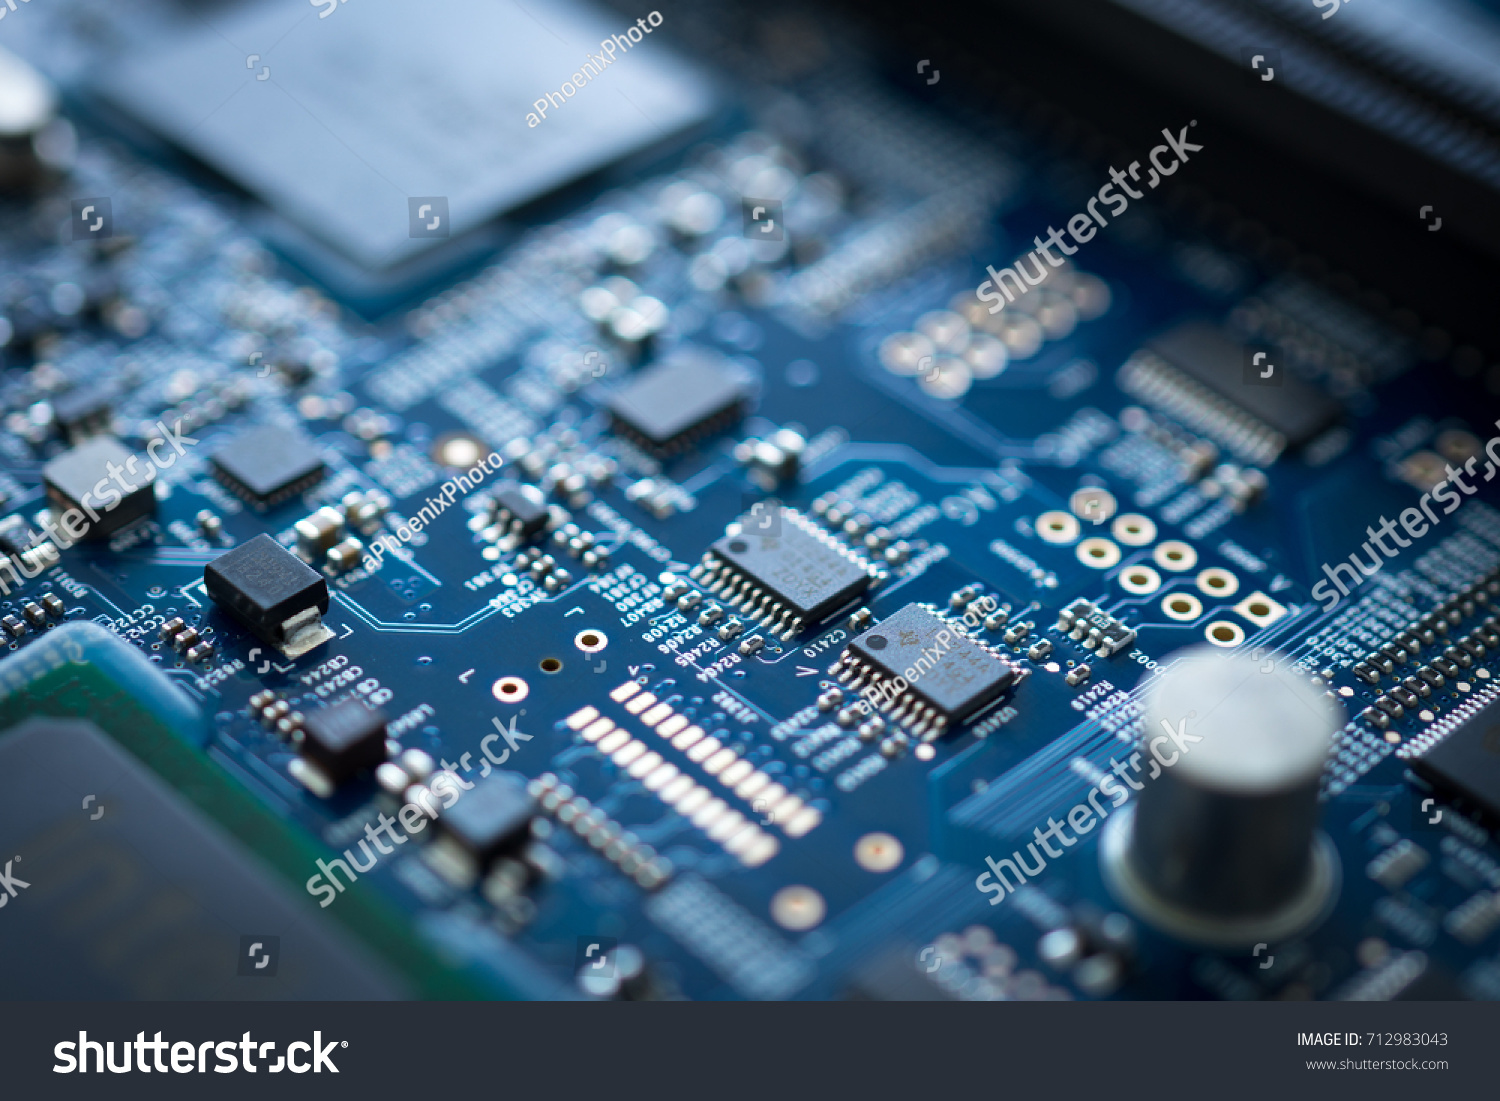 Closeup Of Electronic Device Circuit Board With Processor Background Hardware Blue Texture Technology Computer Serve Cpu Motherboard Chip Component Ez Canvas